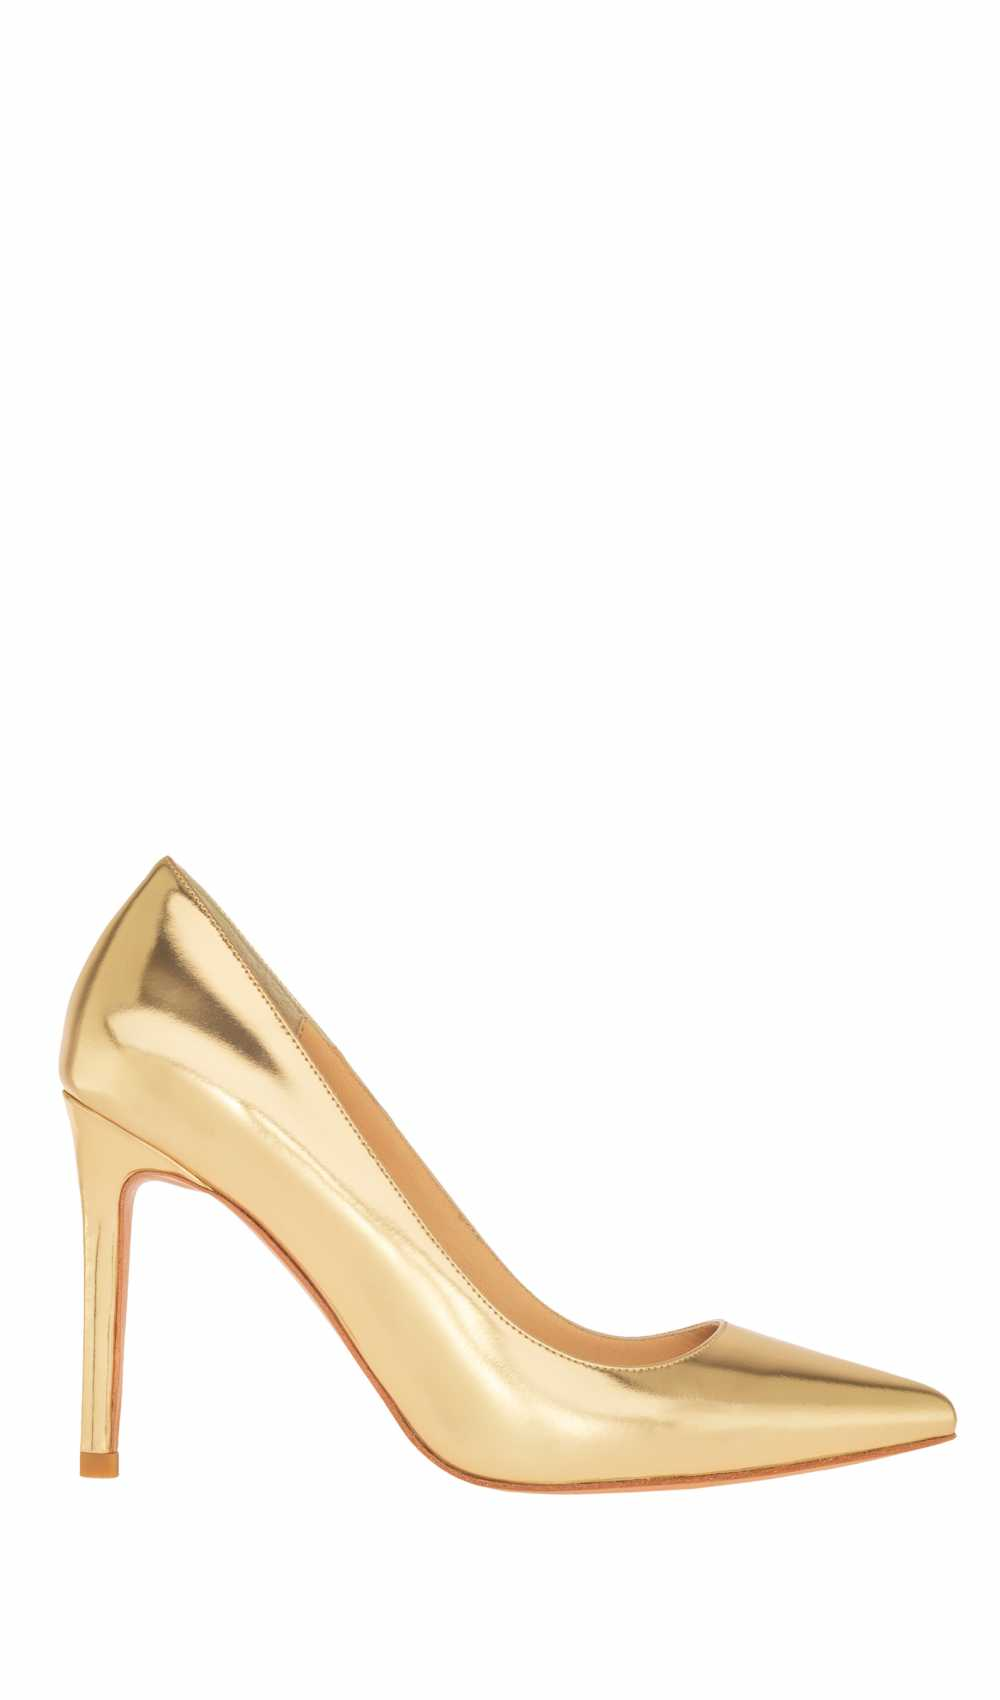 Highheels in gold by Kaviar Gauche